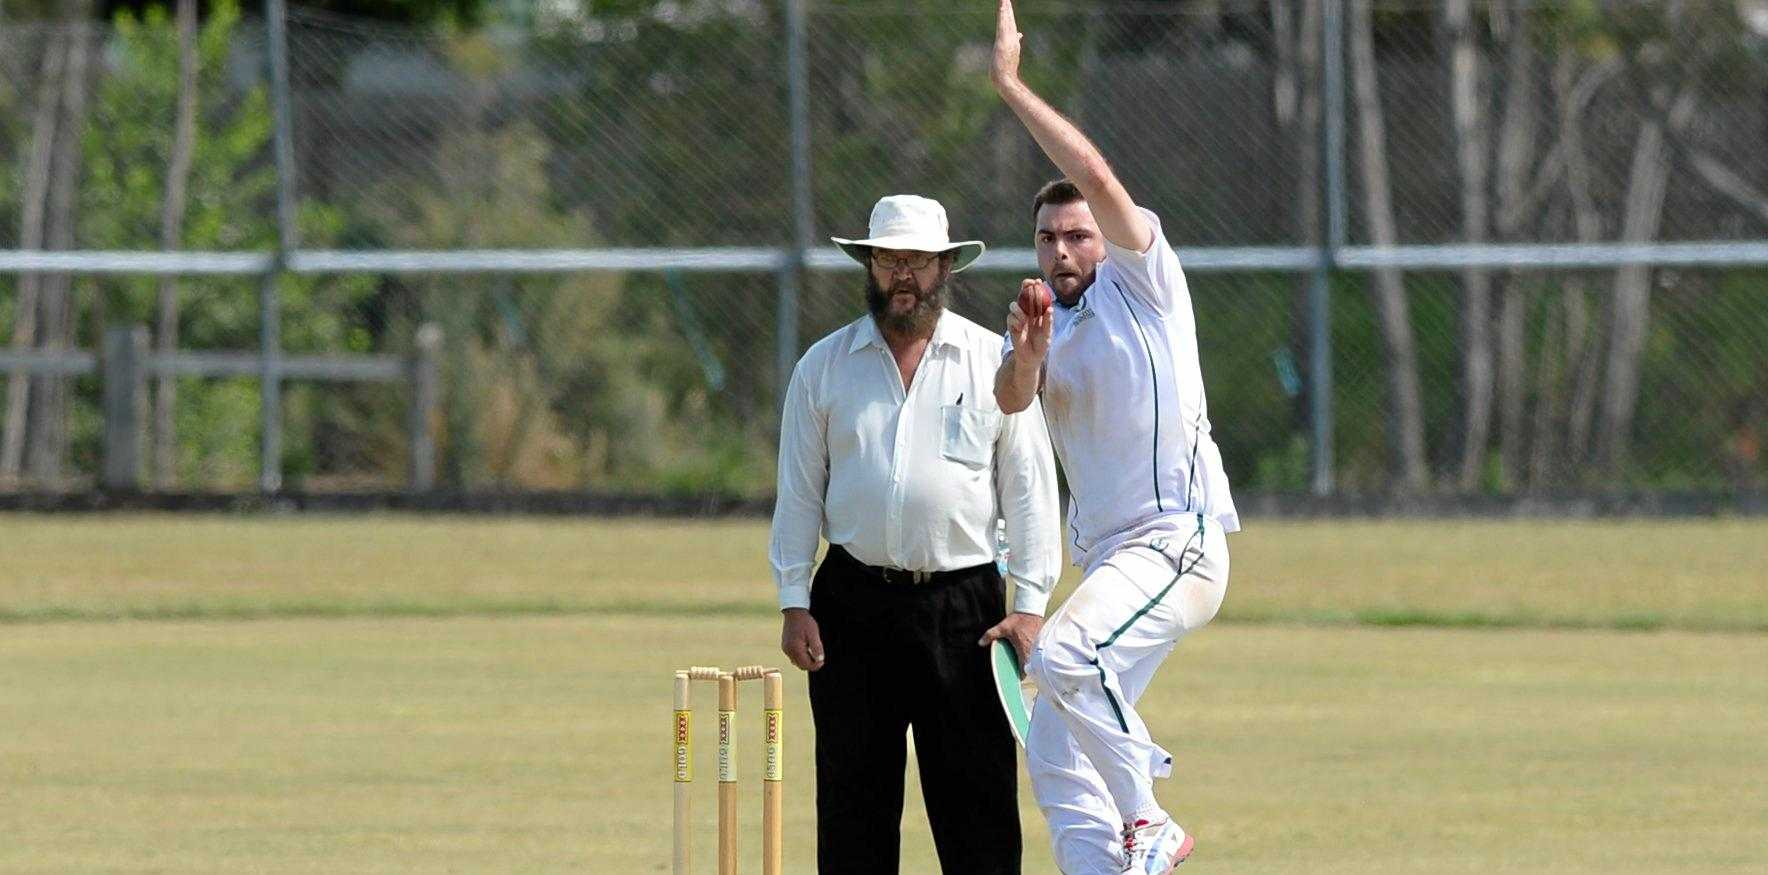 Frenchville's Charlie Simic will line up with Rockhampton against Central Highlands tomorrow.